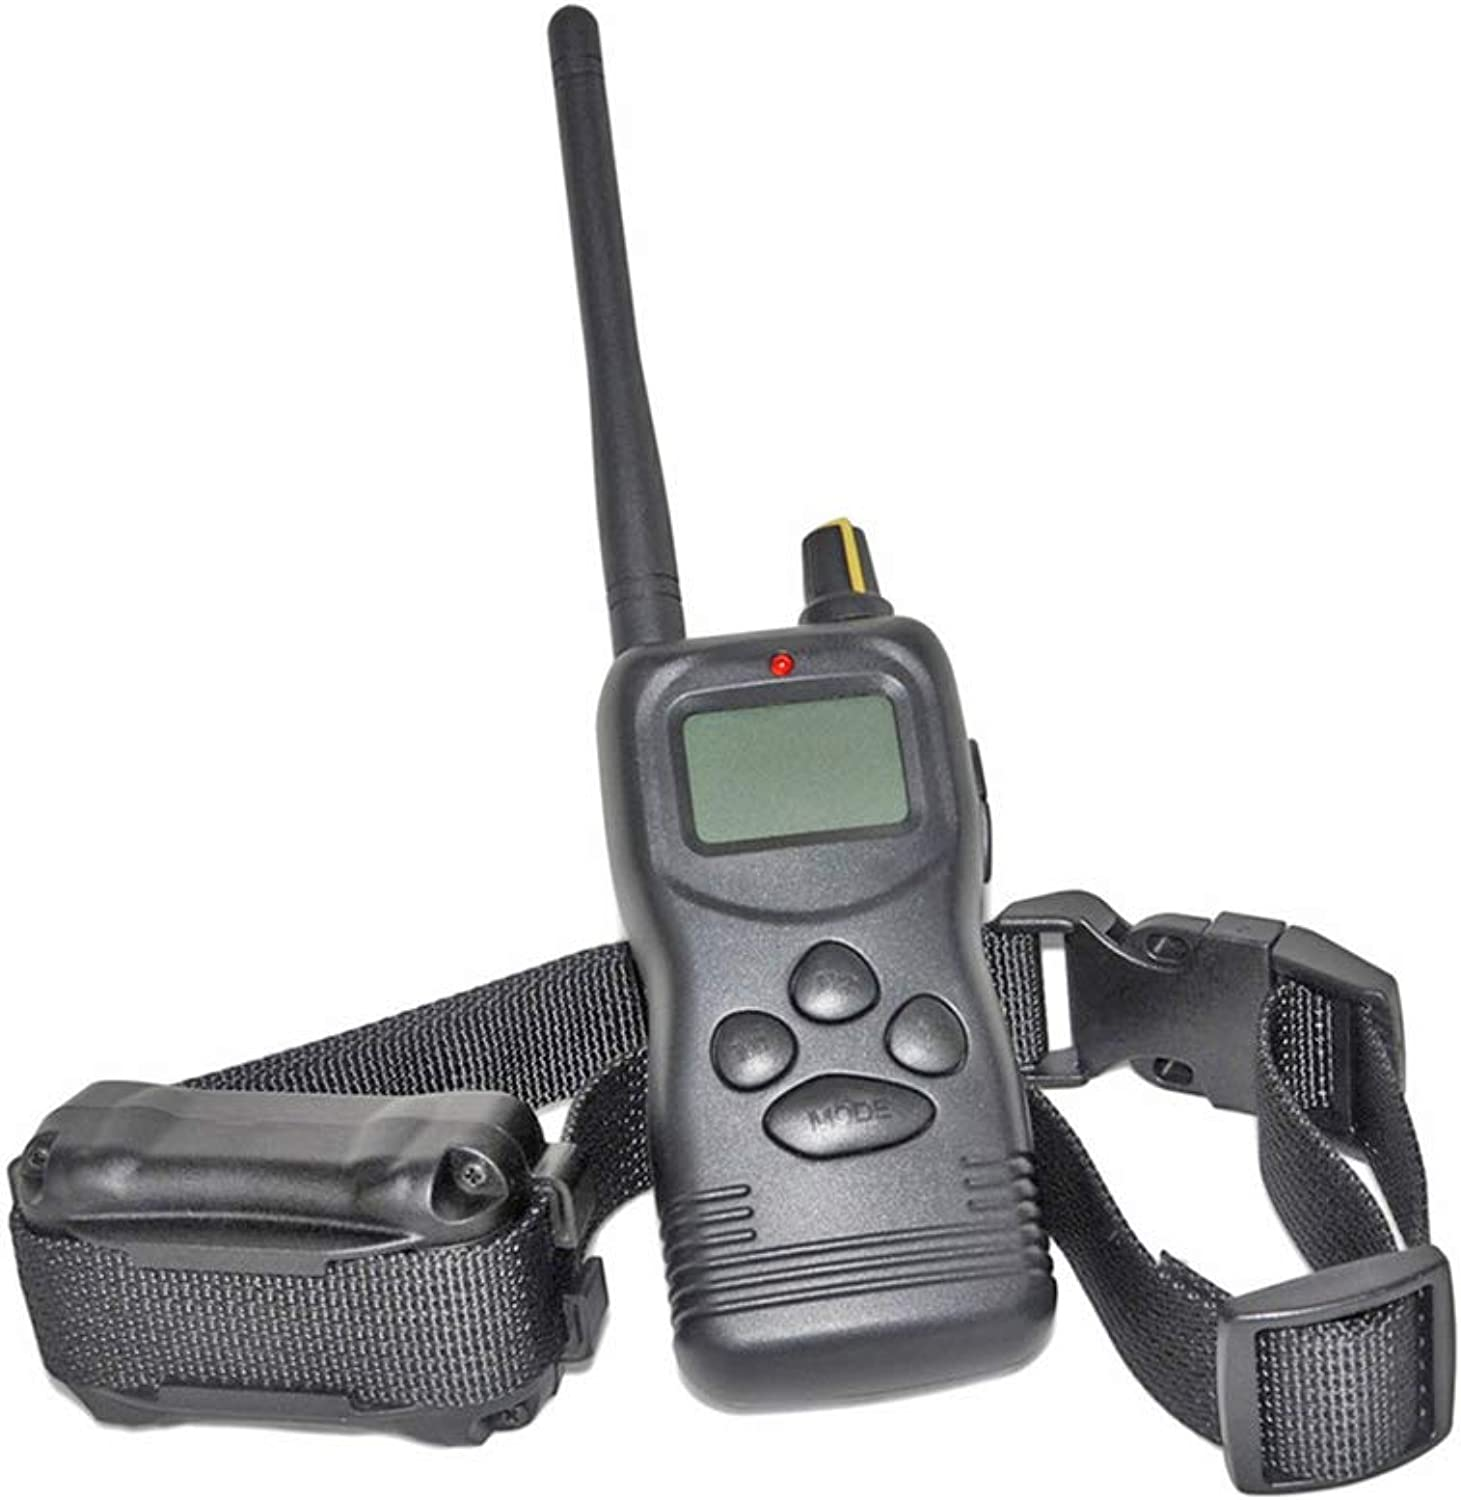 1000 Meters Dog Training Collar, Far Distance Trainer Sound Electric Shock Shock  for Oversized LCD Display Waterproof